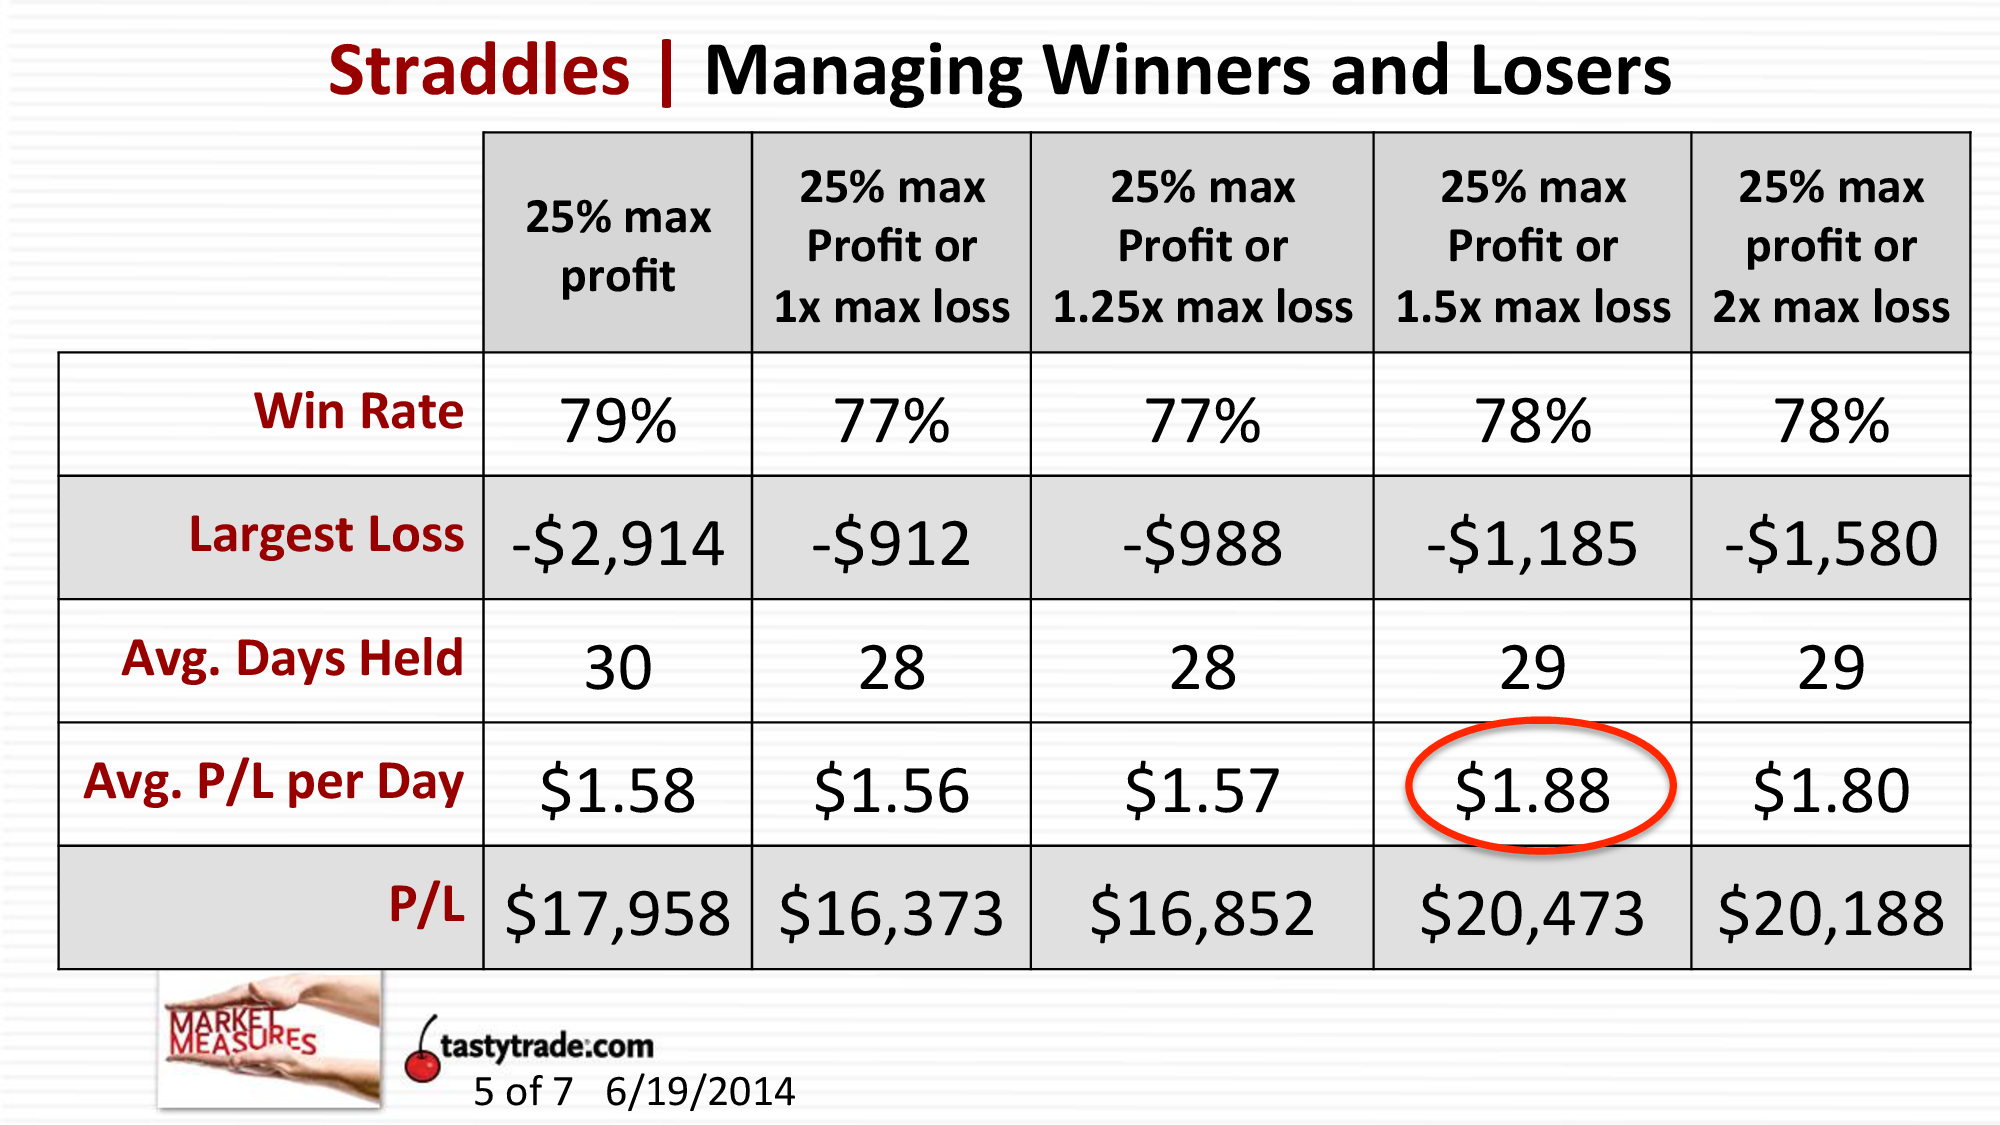 mm061915straddles-managing-winners-and-losers_mstr-4.png